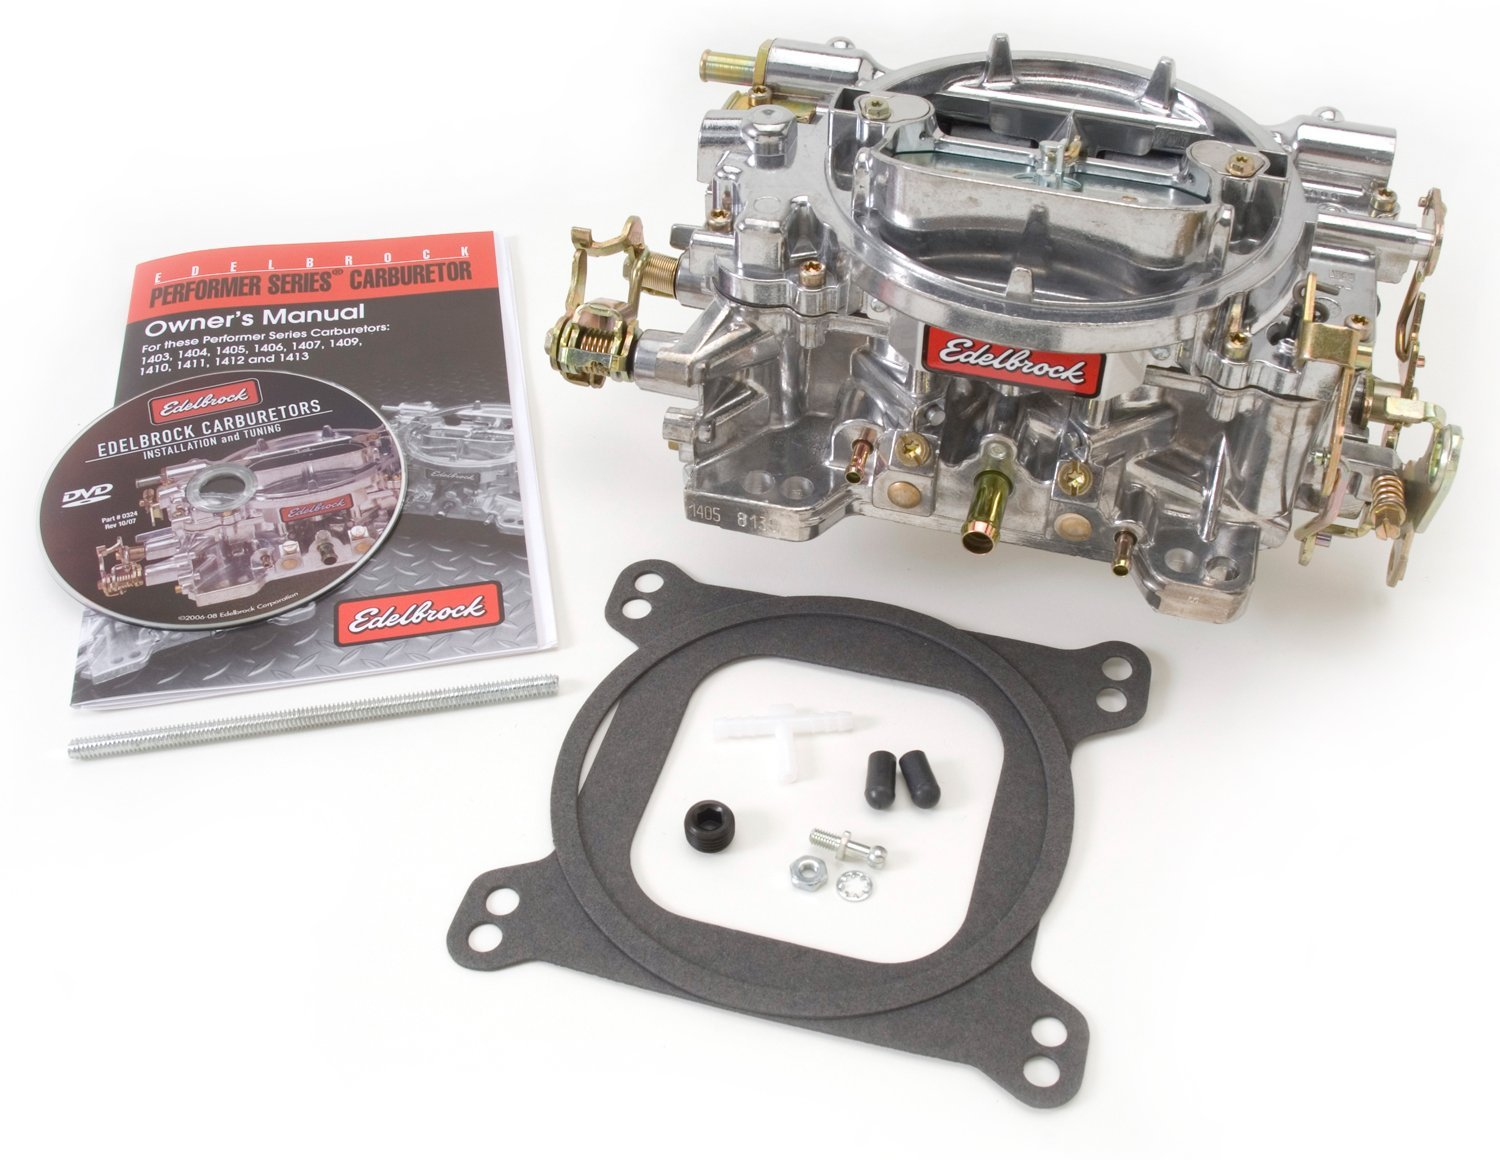 Edelbrock  Carburetor 600cfm - Manual choke